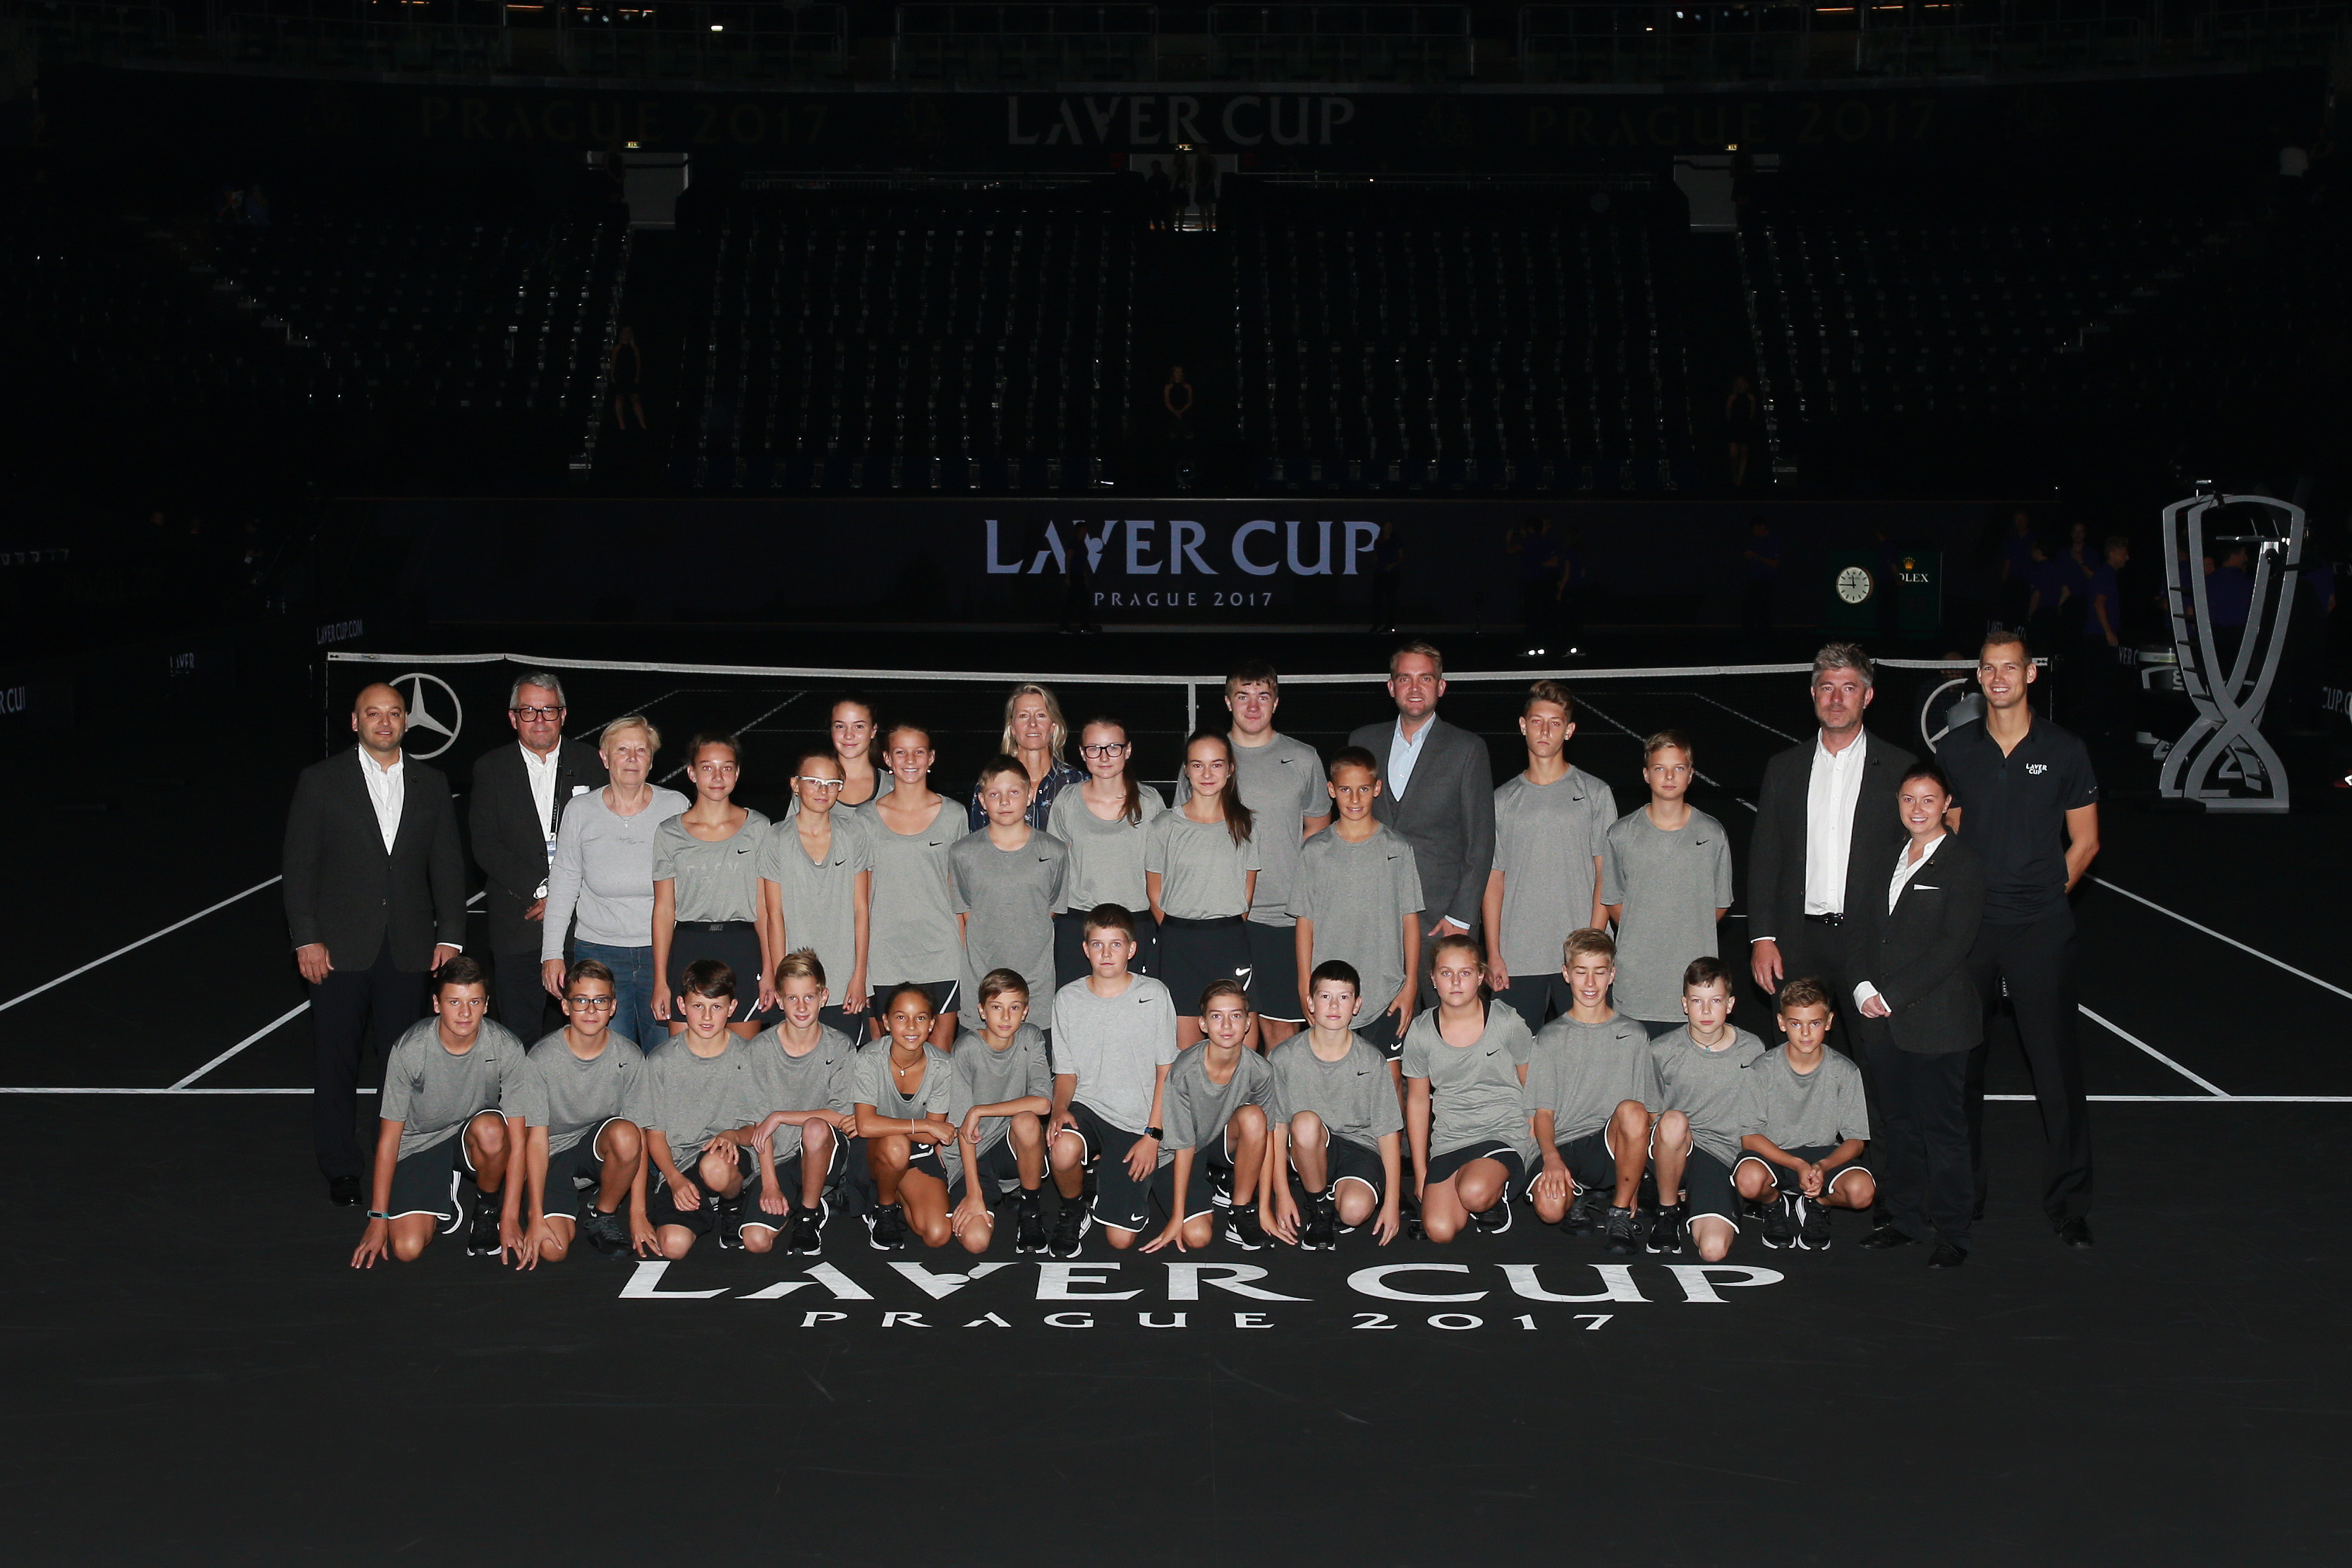 The Laver Cup consists of six European players competing against their counterparts from the rest of the World. The event runs from 22-24 September. photo: Pavel Lebeda / sport-pics.cz